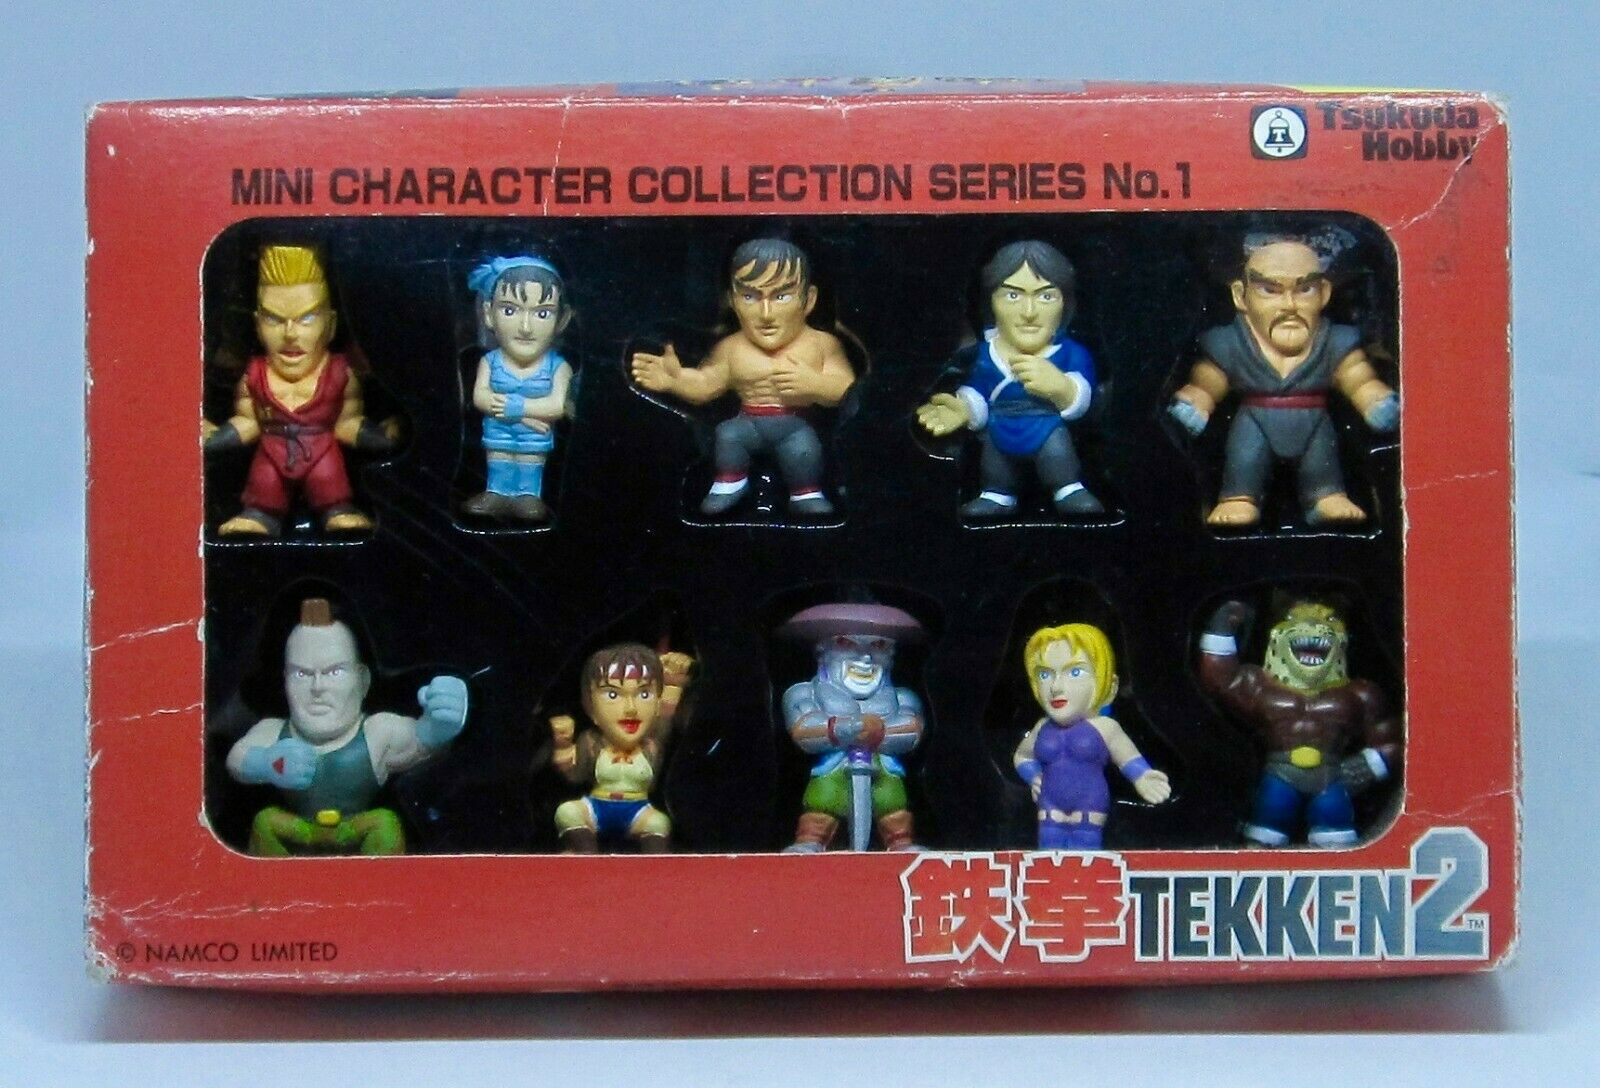 Tekken 2 MINI CHARACTER COLLECTION SERIES No. 1 Tsukuda Hobby Figures